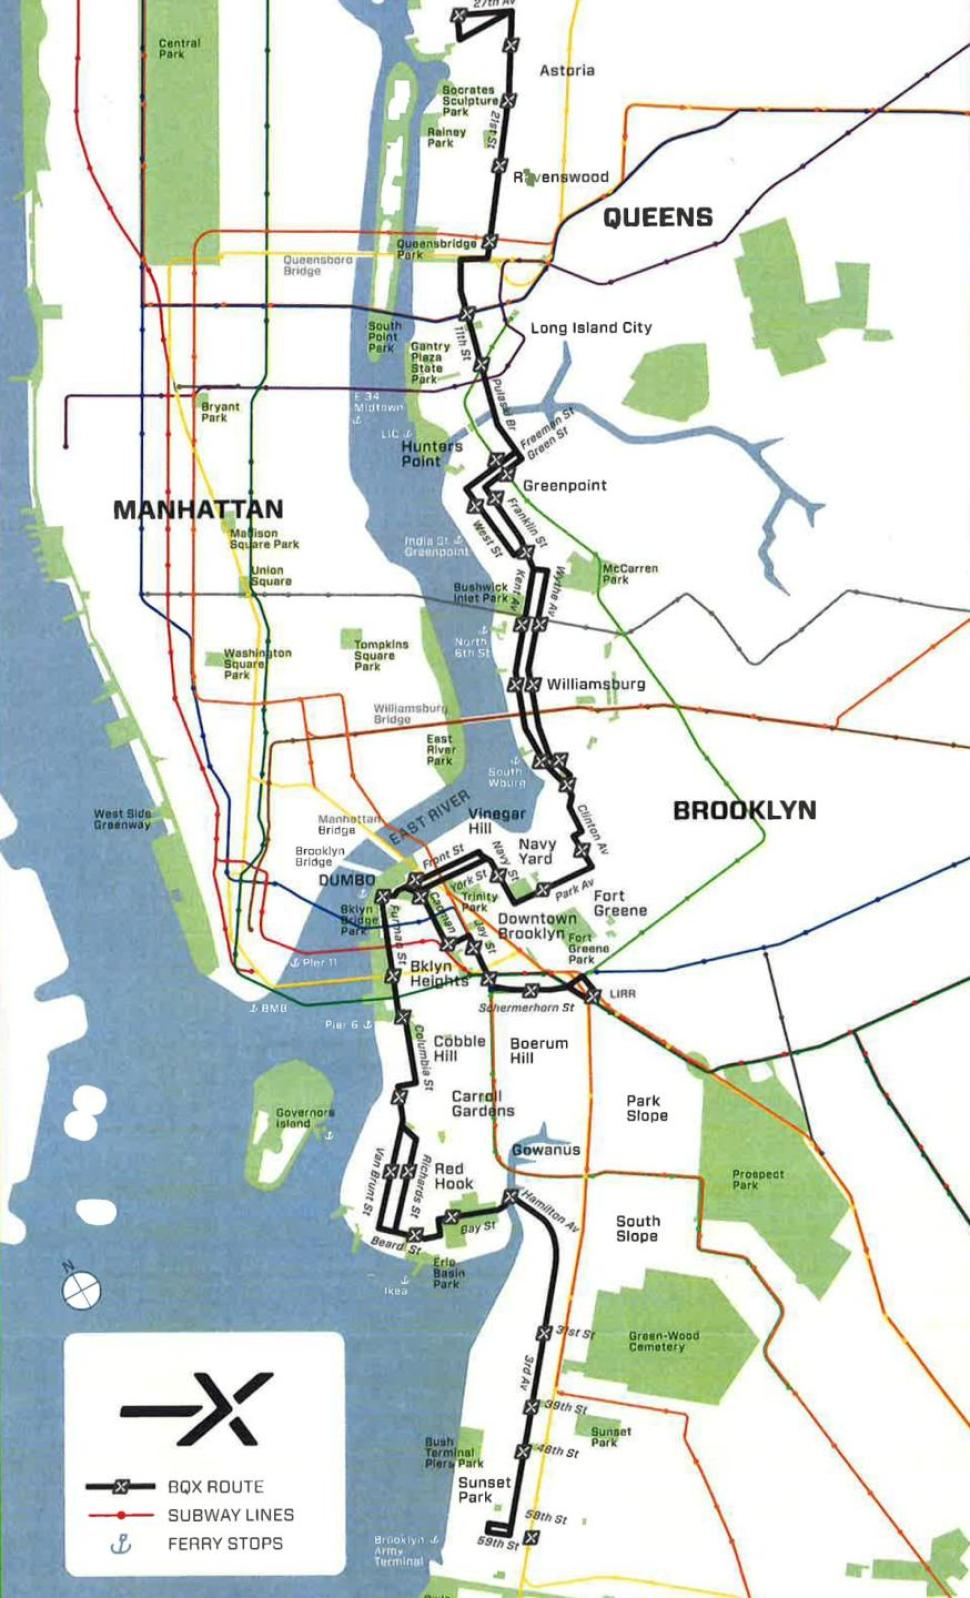 Queens County Free Maps Free Blank Maps Free Outline Maps Free - Nyc map long island city